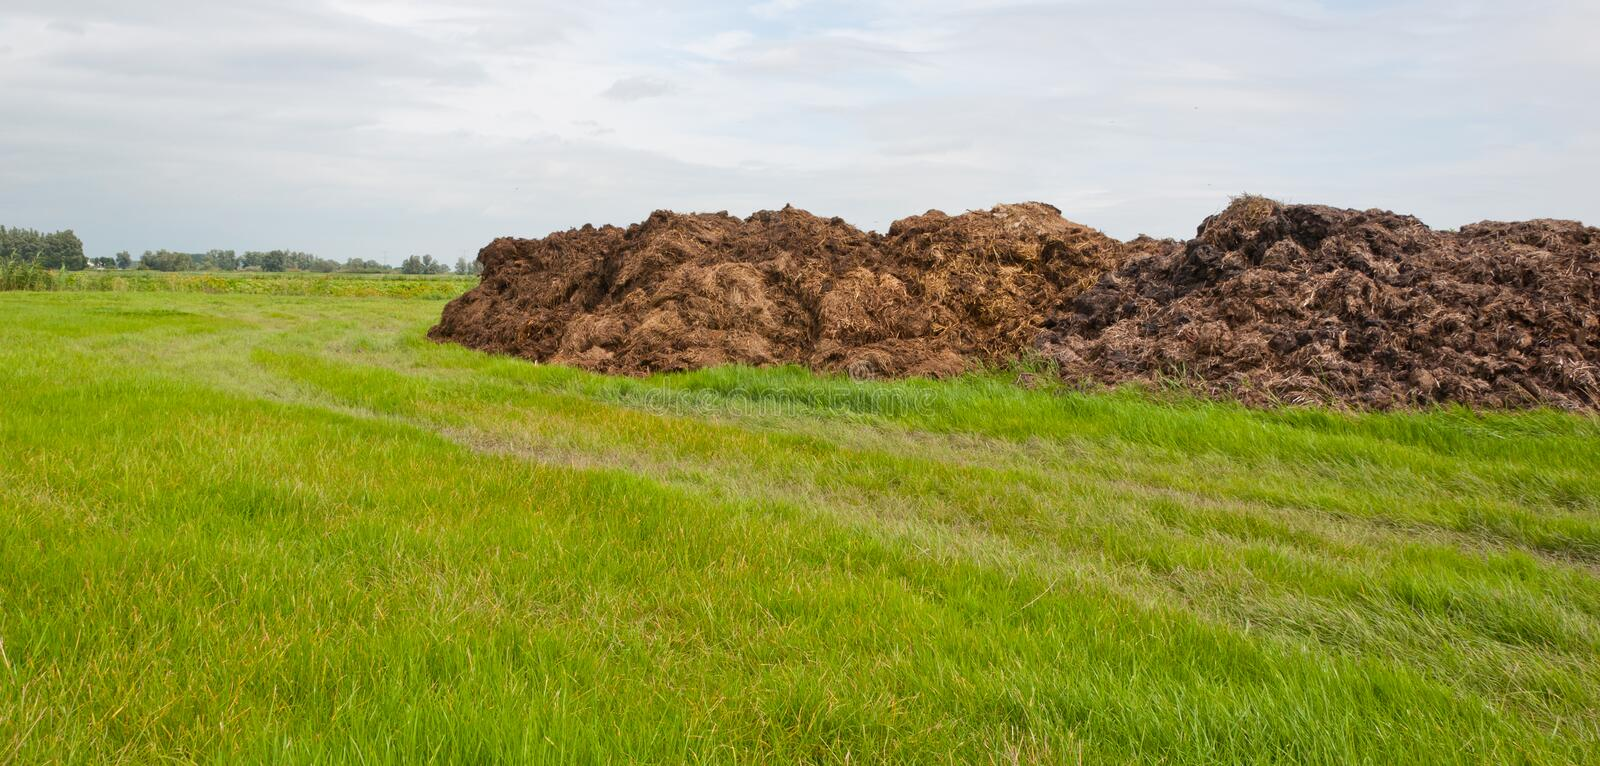 Download Part Of Dung Heap In The Field Royalty Free Stock Photos - Image: 20700298